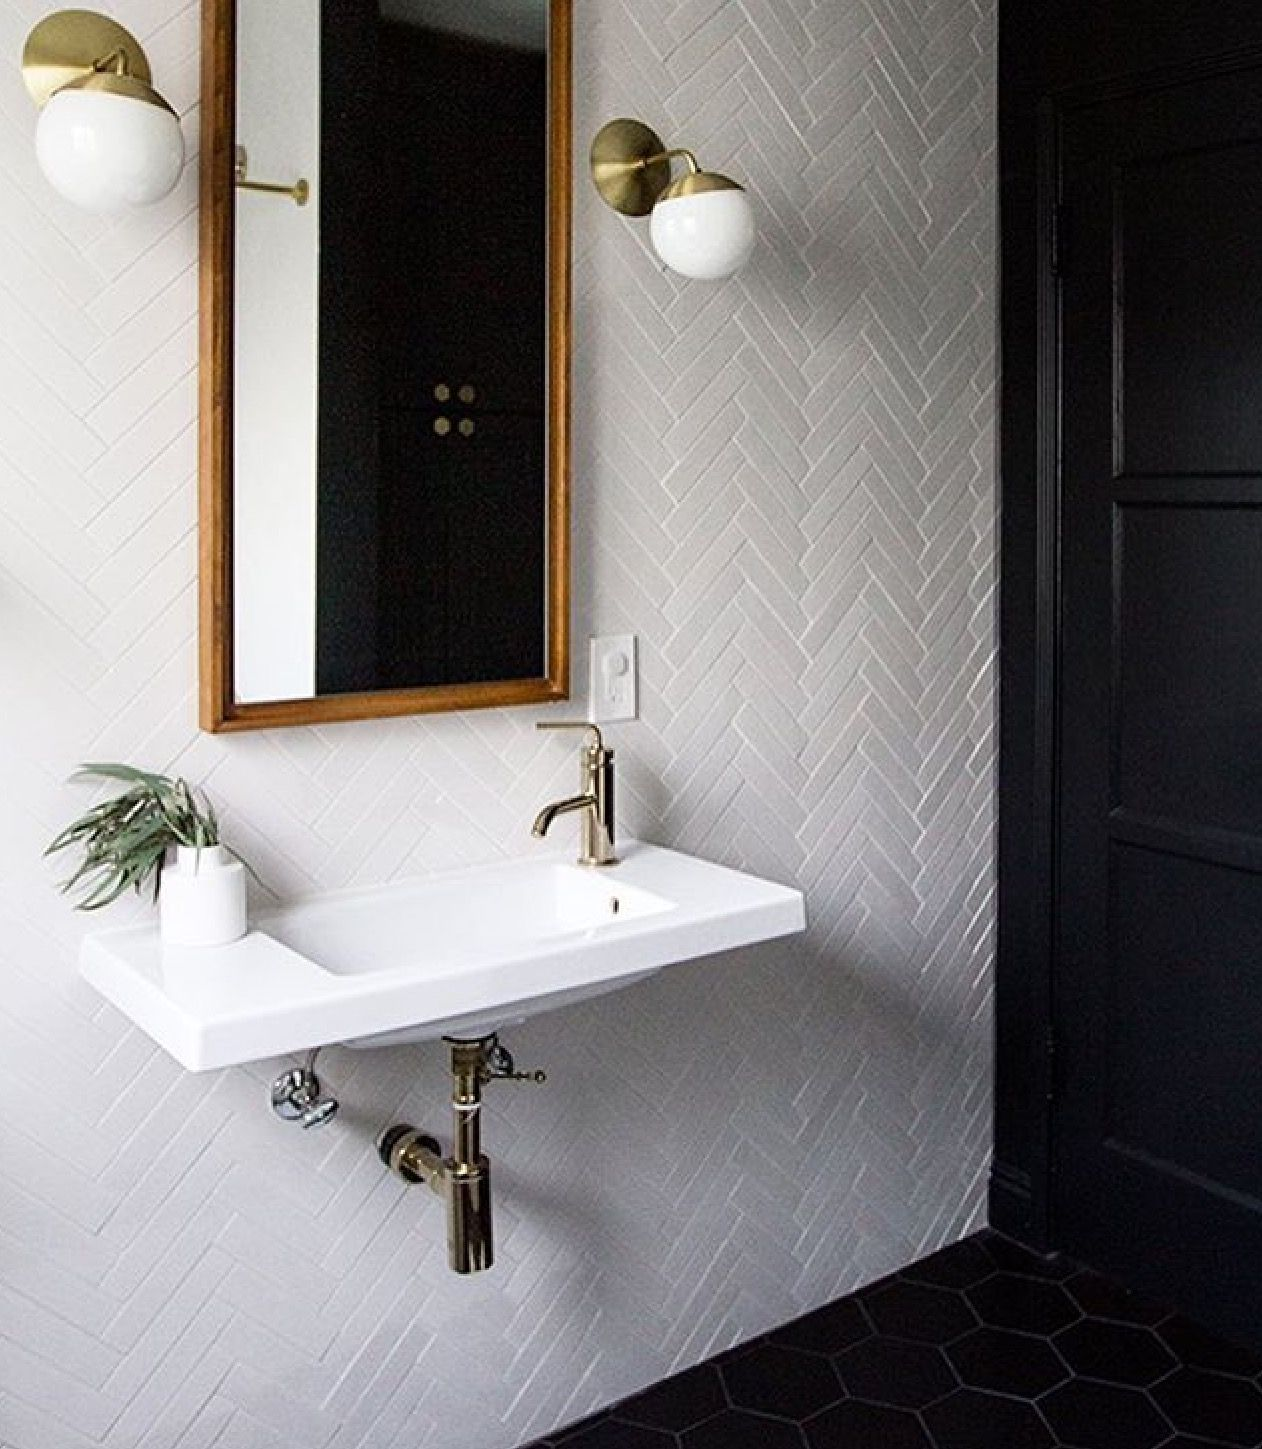 Herringbone home pinterest herringbone powder room and bath walls clad in a white herringbone tiles with a west elm floating wood wall mirror illuminated by cedar moss alto sconces over a white porcelain wall mount dailygadgetfo Choice Image